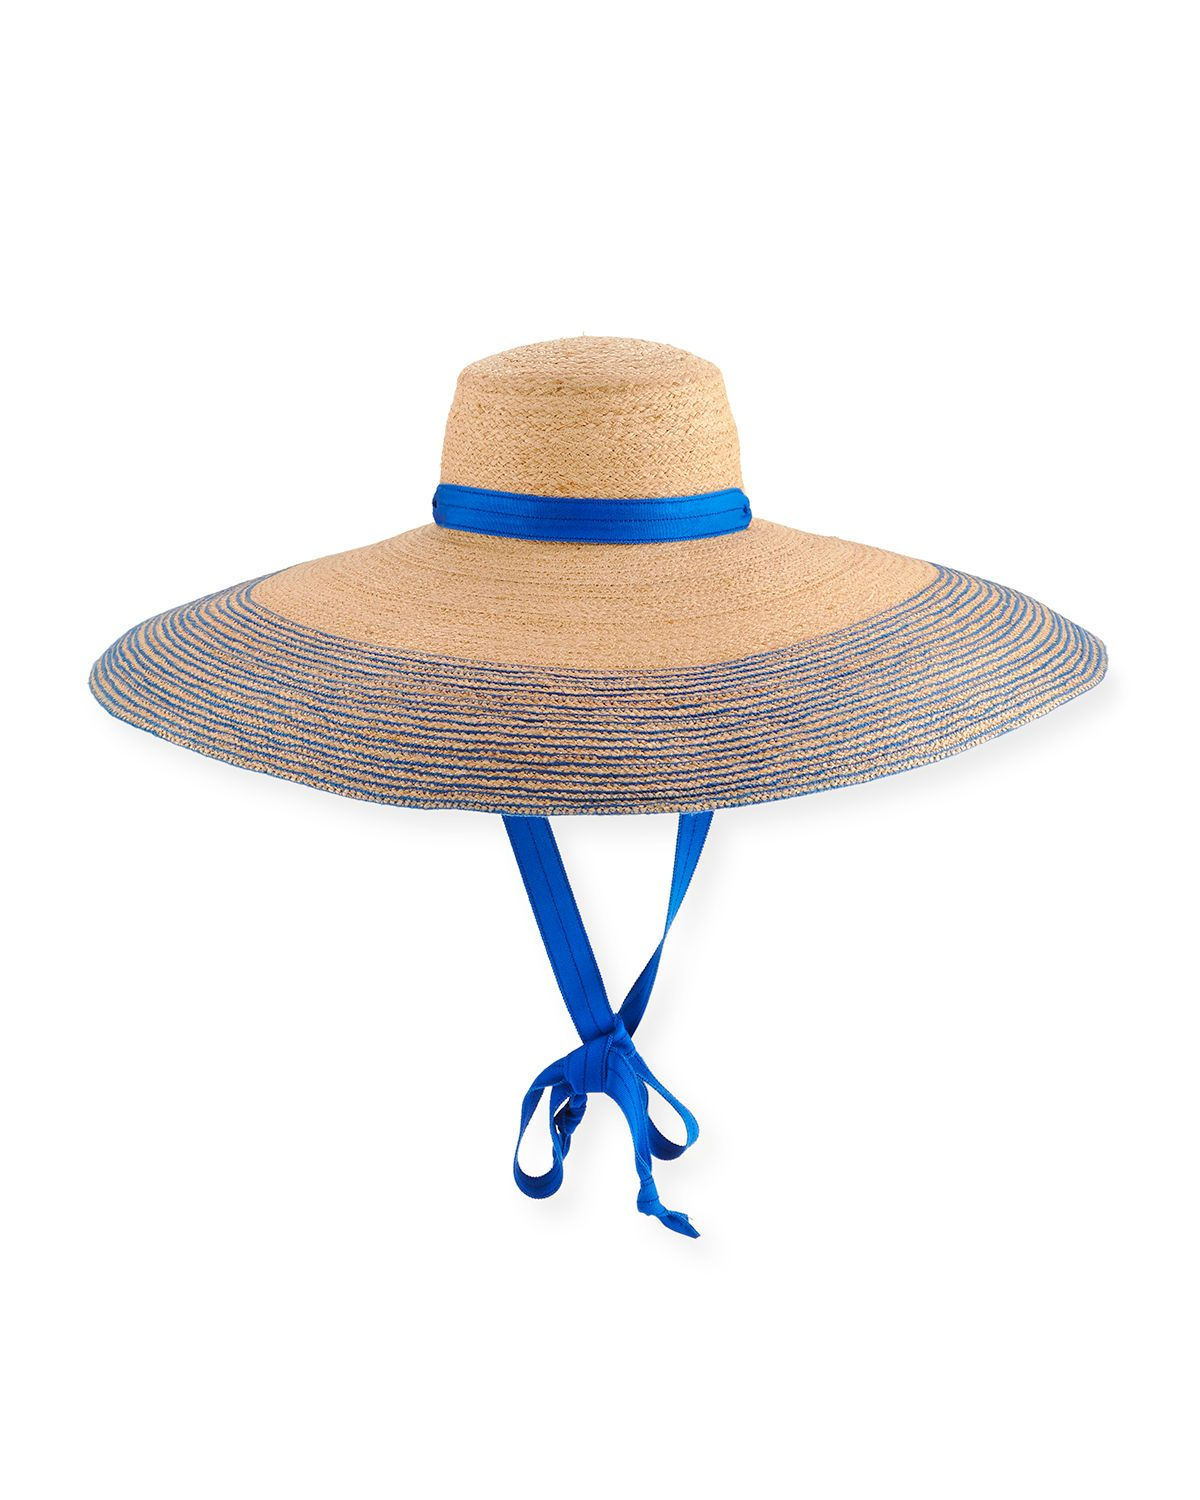 63a8ec6d7dfc LOLA HATS NOMAD WIDE-BRIM RAFFIA SUN HAT WITH RIBBON. #lolahats ...